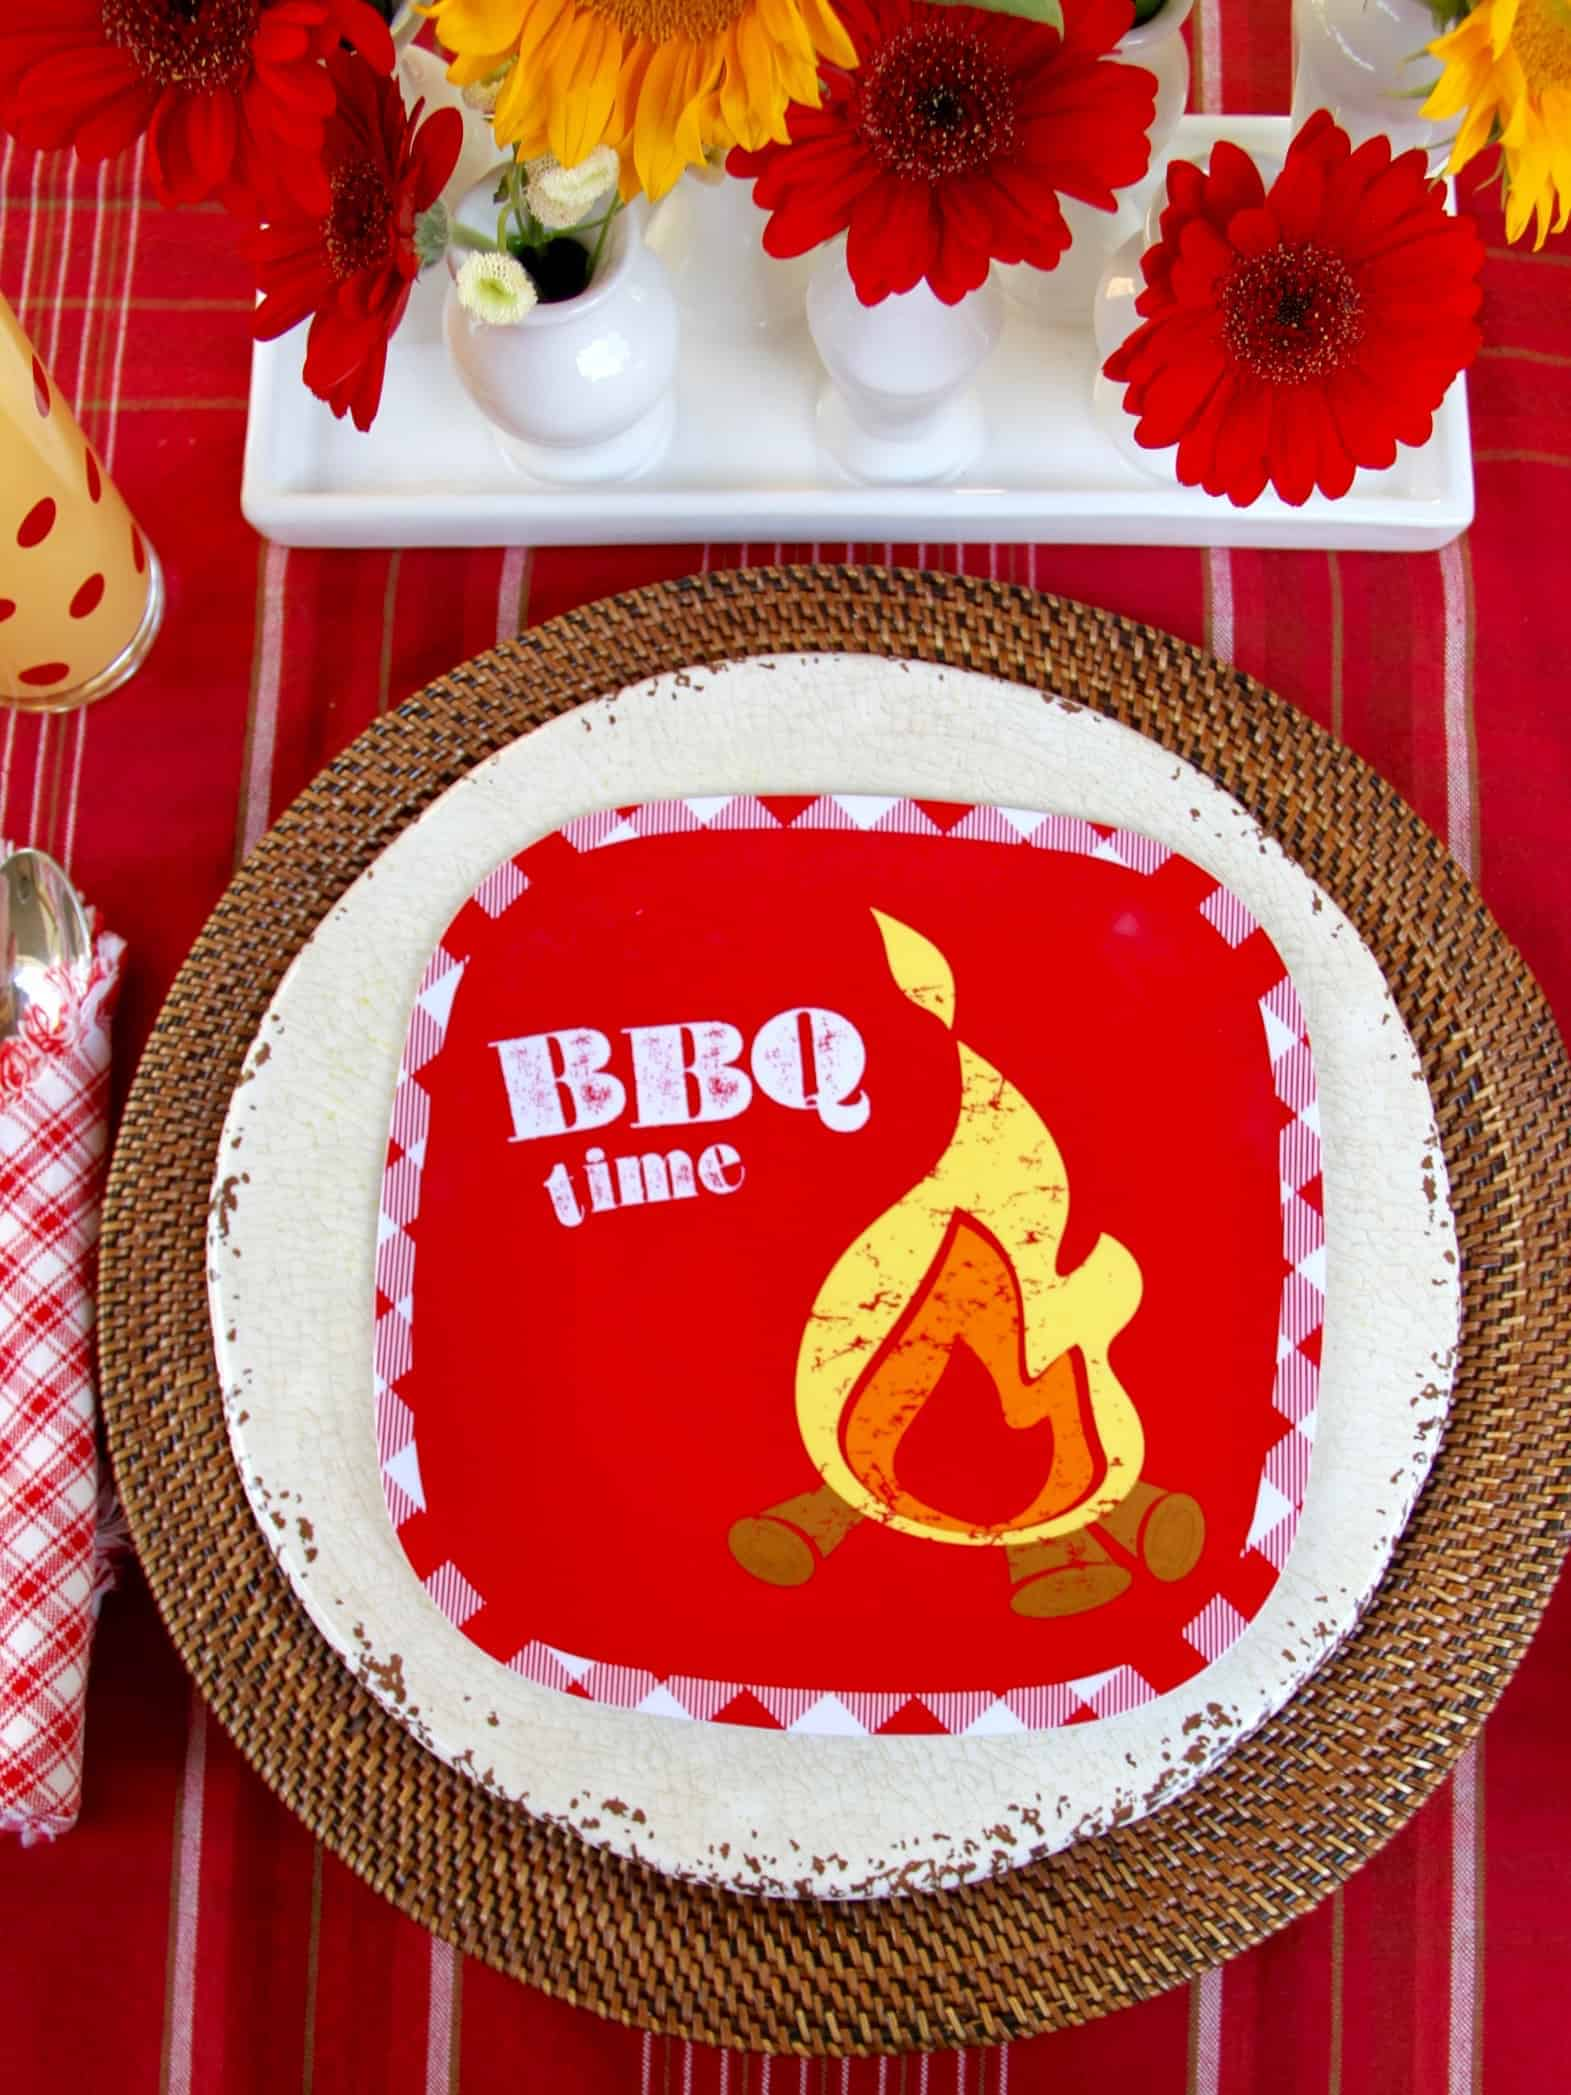 A place setting at a backyard barbecue using a bright red plate that says BBQ time on it.